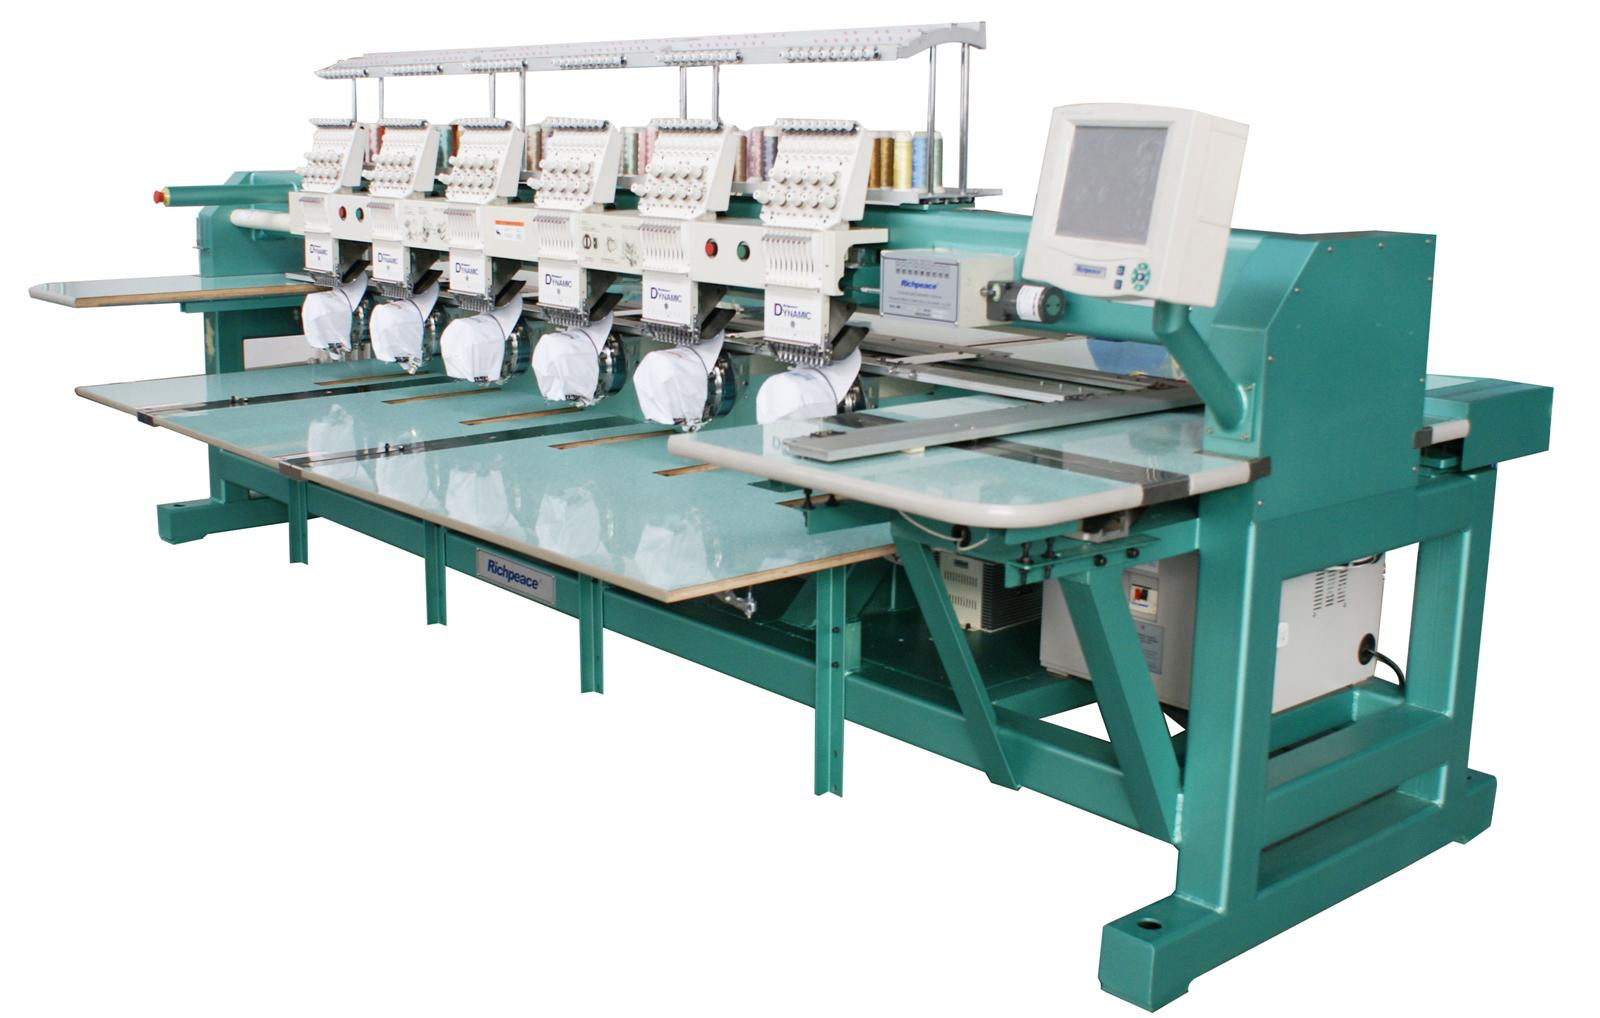 Used Embroidery Machines Luxury T Shirt Embroidery Singapore Premium Quality Of Contemporary 41 Images Used Embroidery Machines